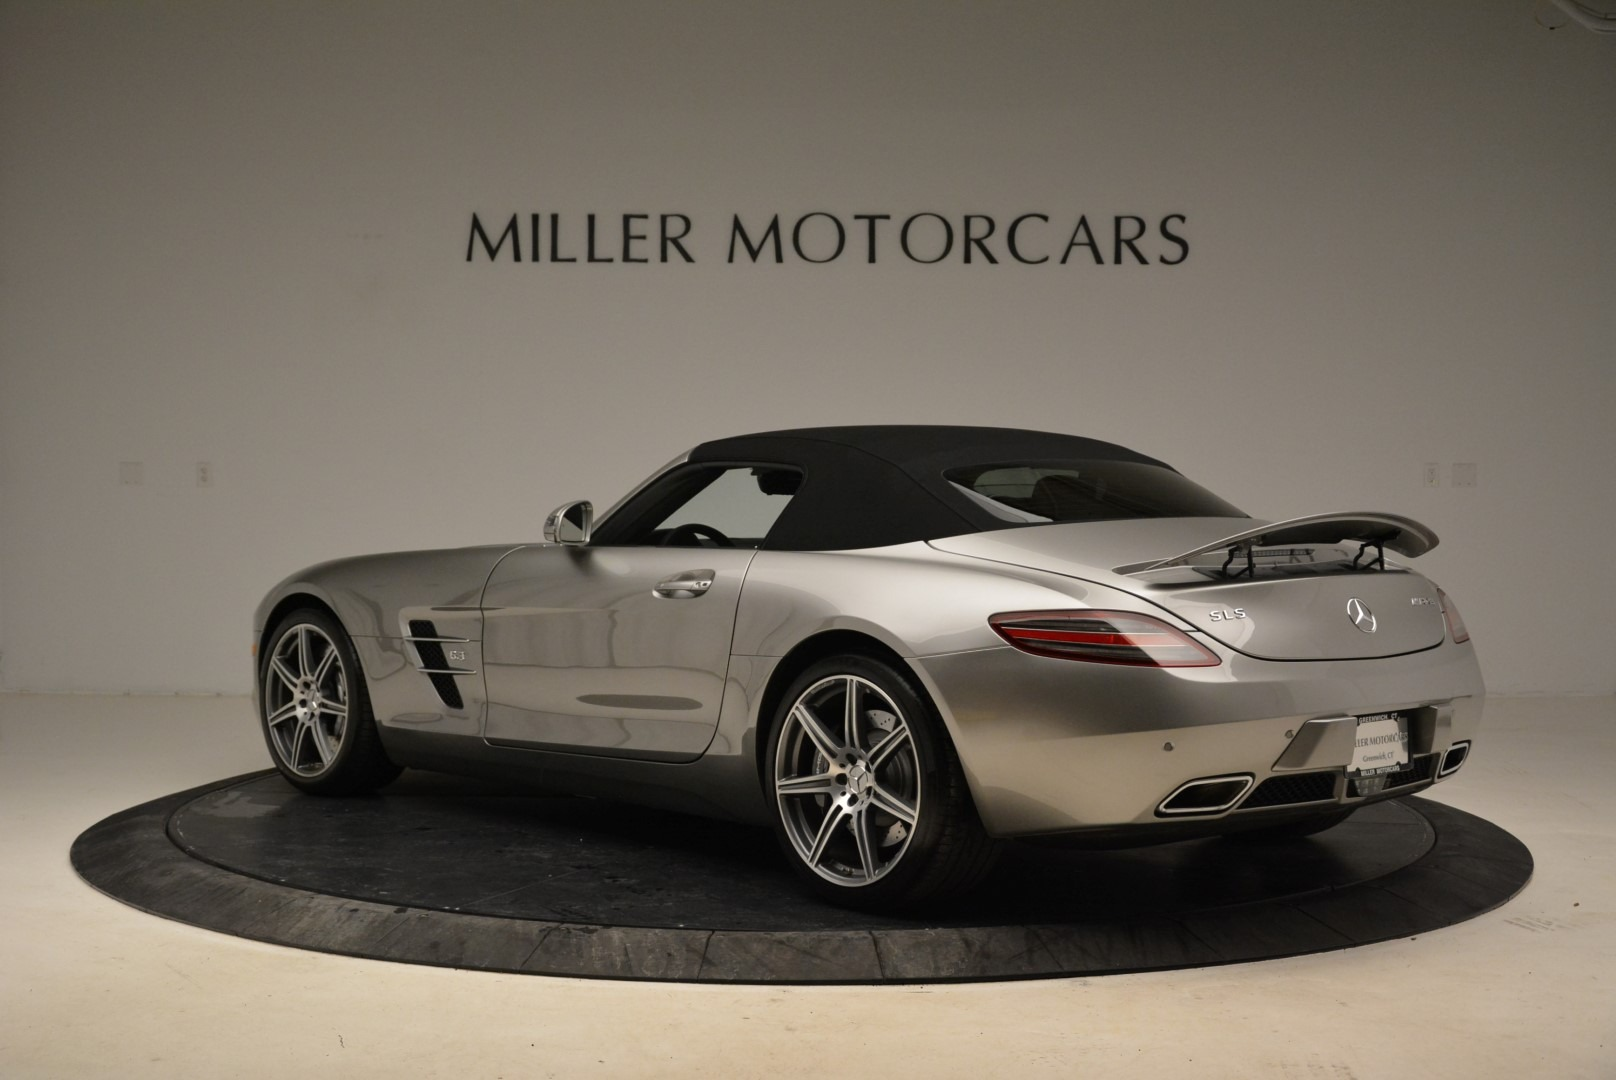 Used 2012 Mercedes-Benz SLS AMG  For Sale In Westport, CT 2068_p15